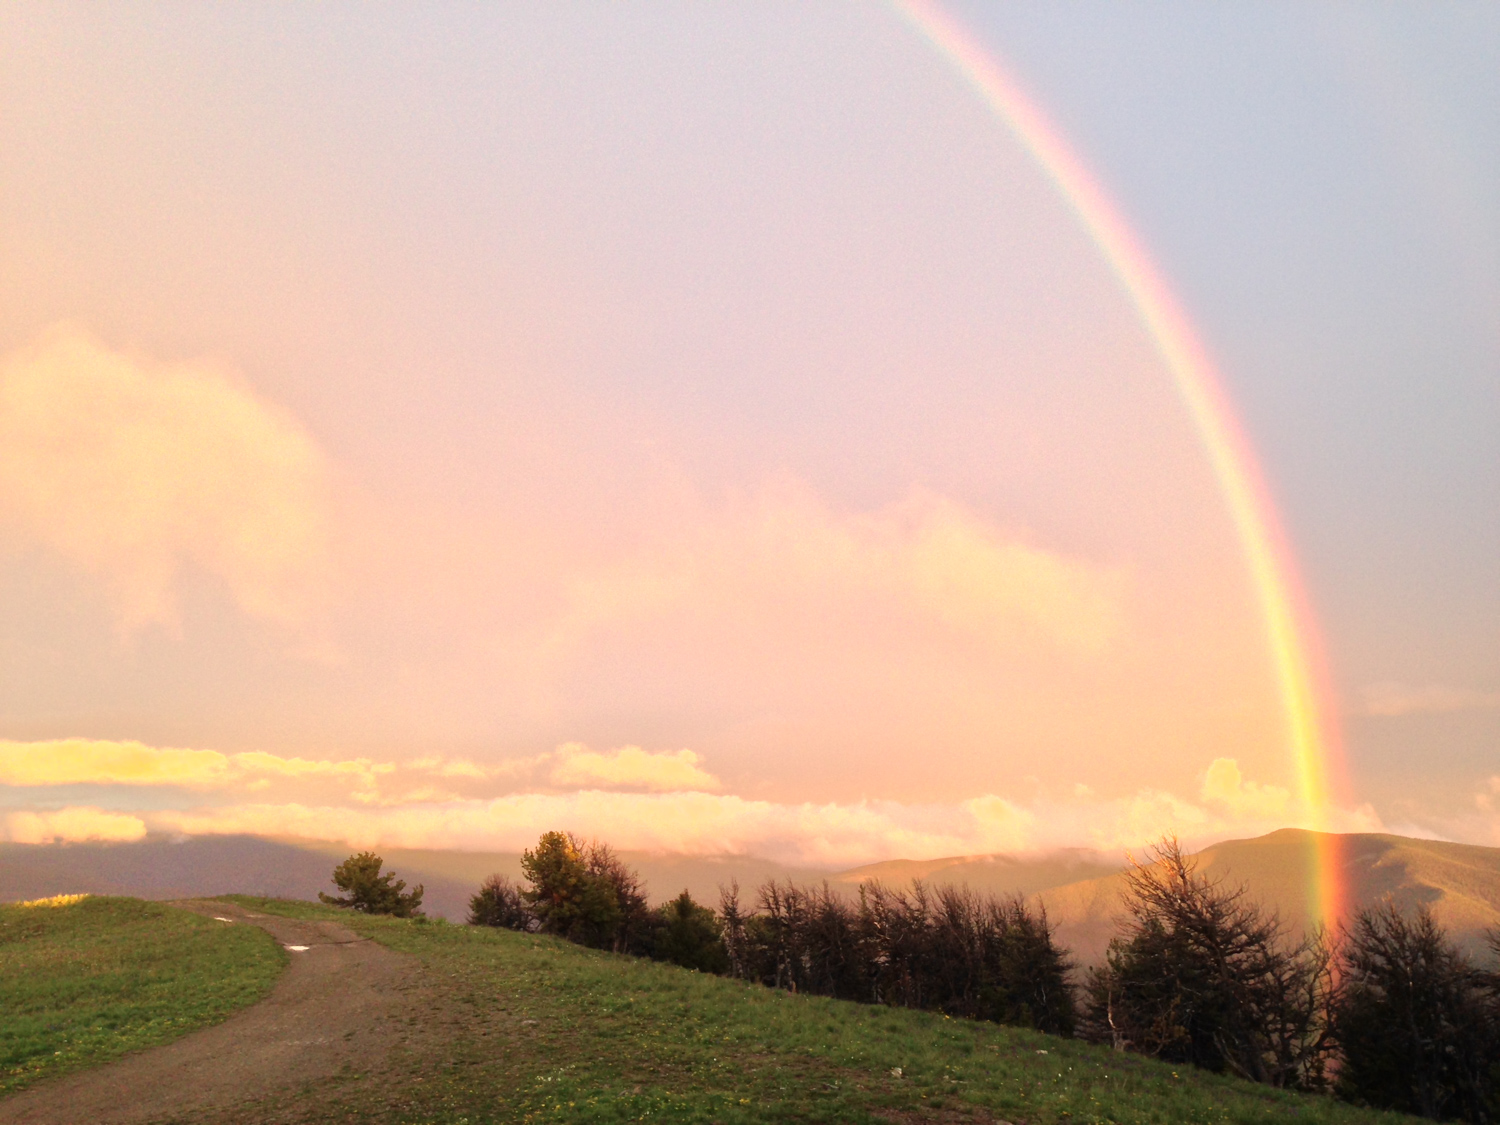 Rainbow between showers and sunset